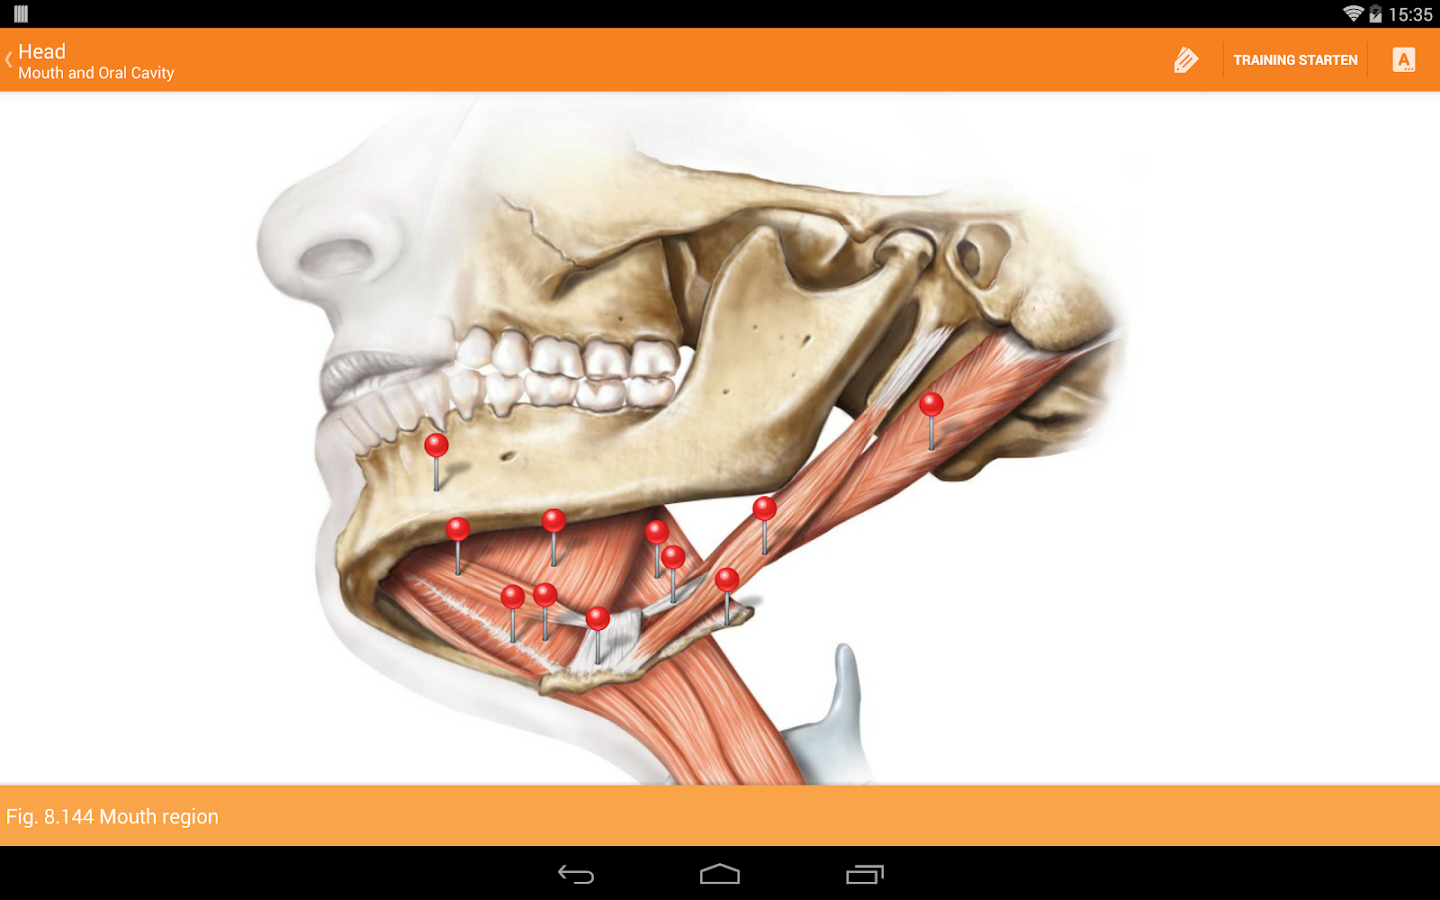 Sobotta Anatomy Atlas Screenshot 10